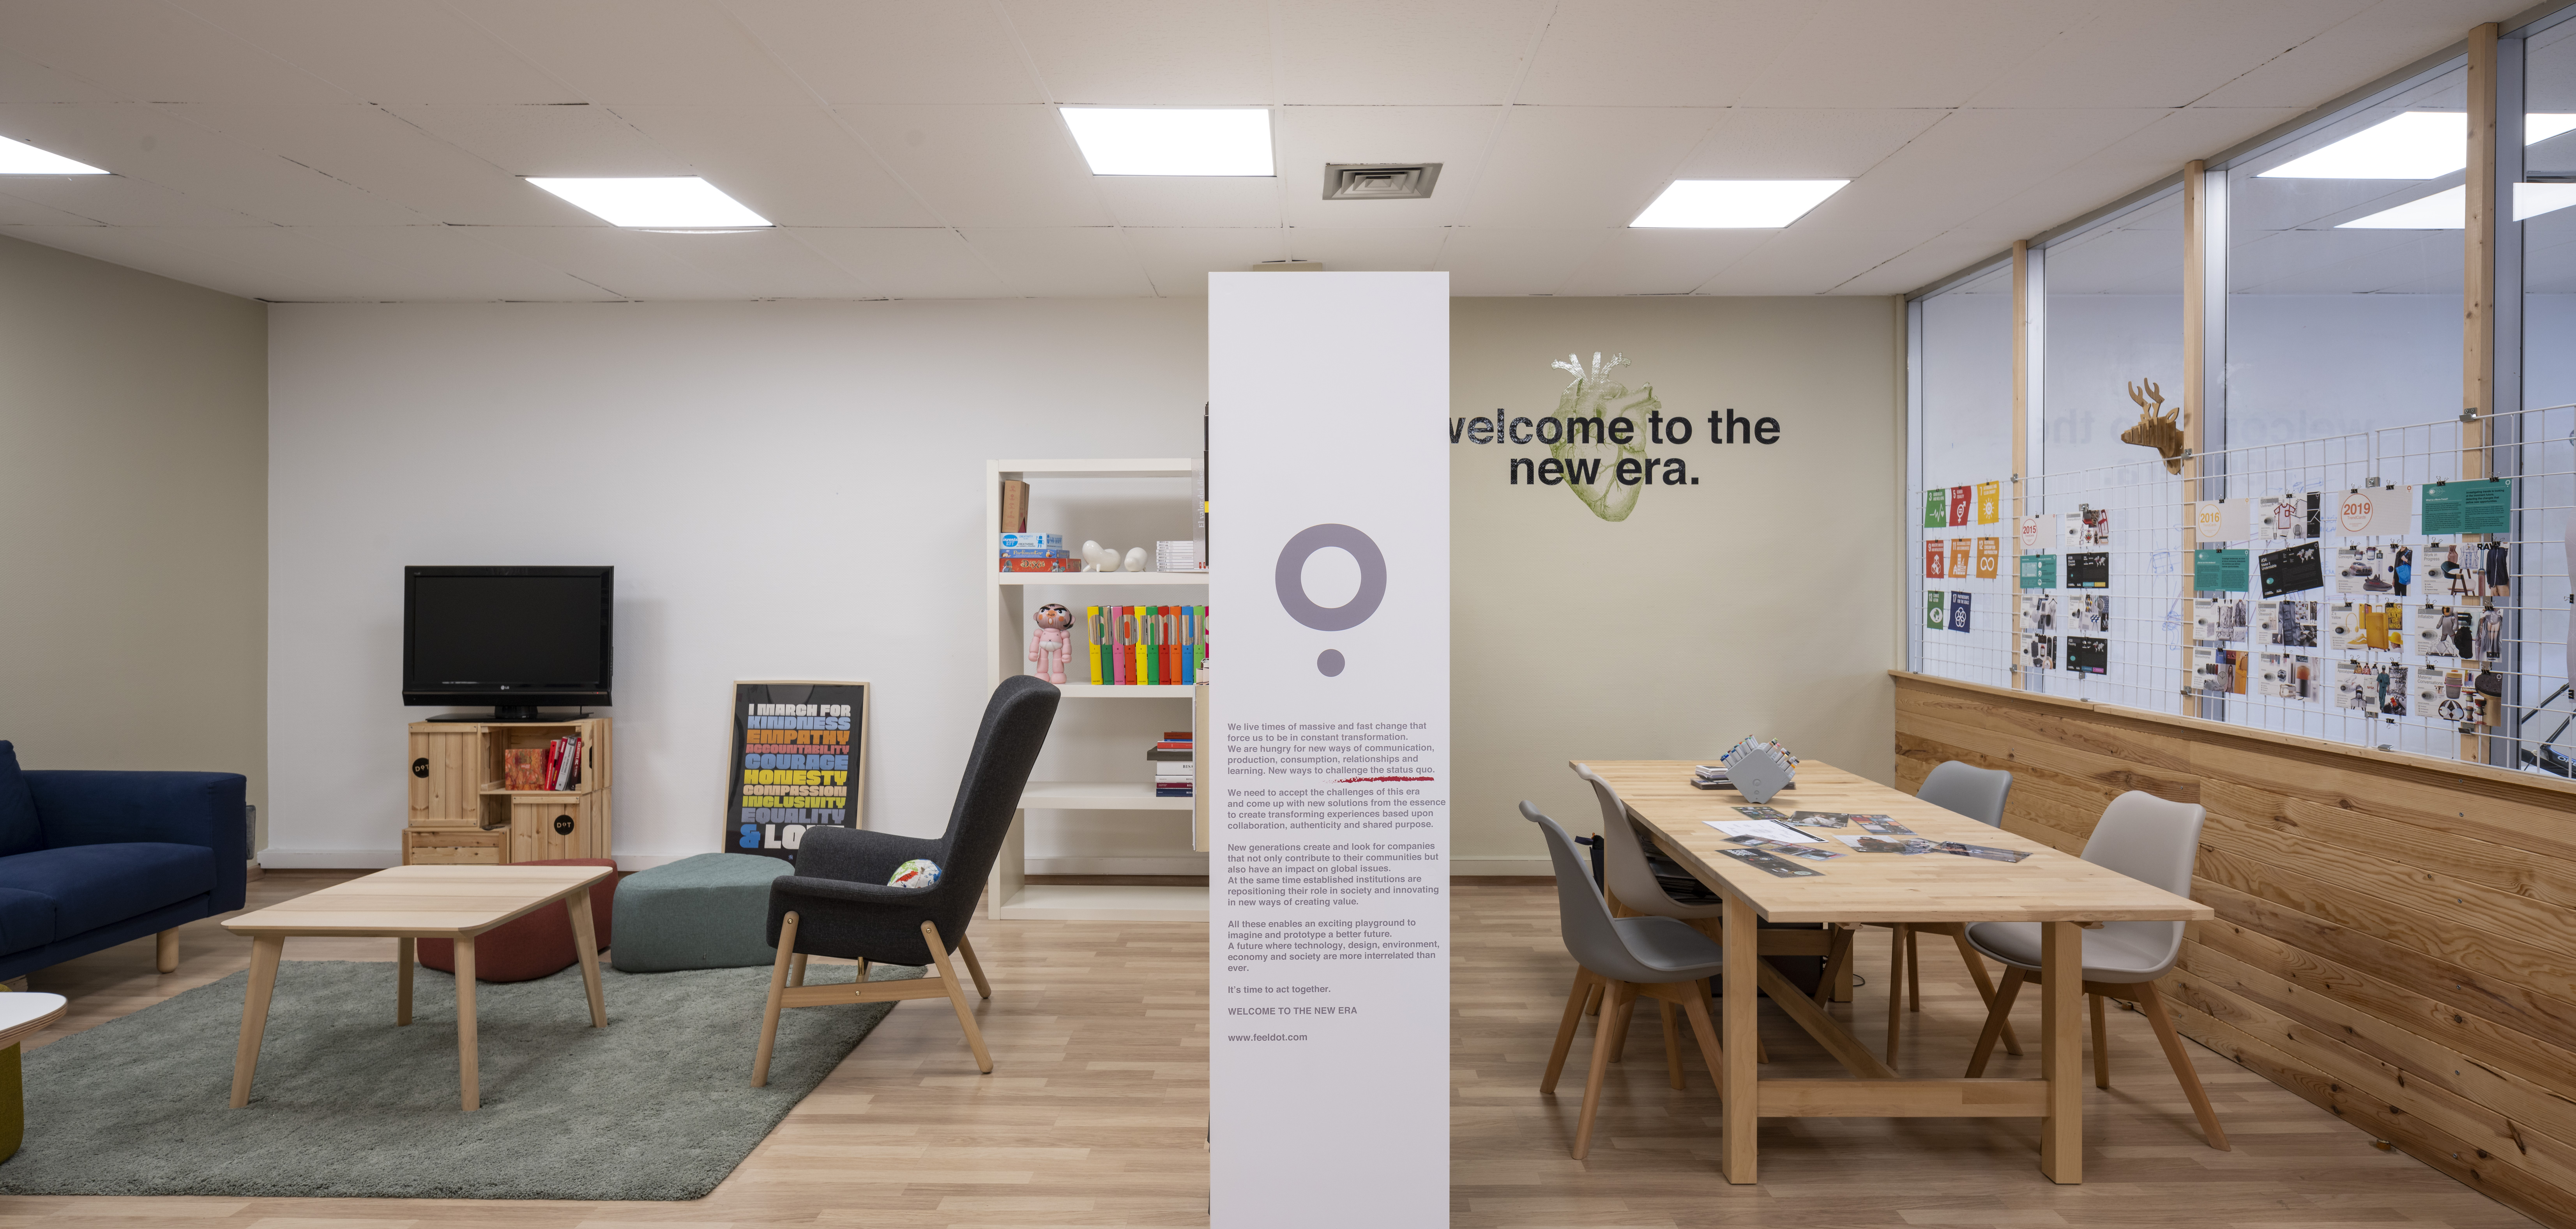 Entrance- DOT- design - strategy - product - office - workspace - innovation - headquarters - Bilbao